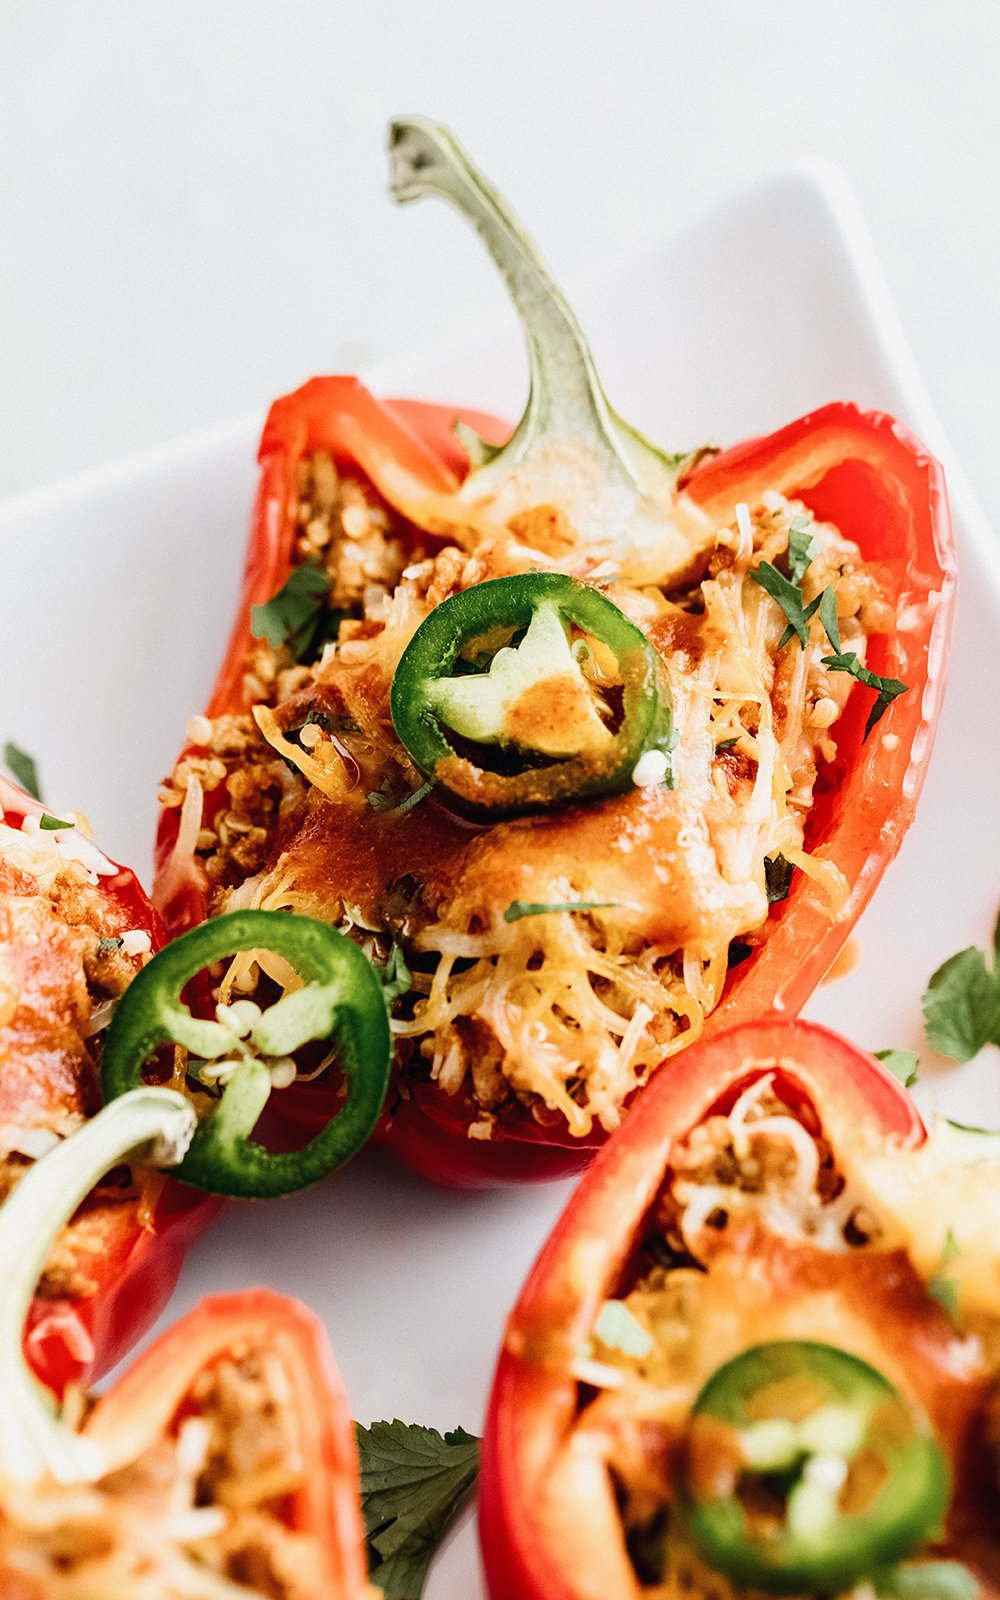 quinoa stuffed bell peppers topped with jalapeño slices